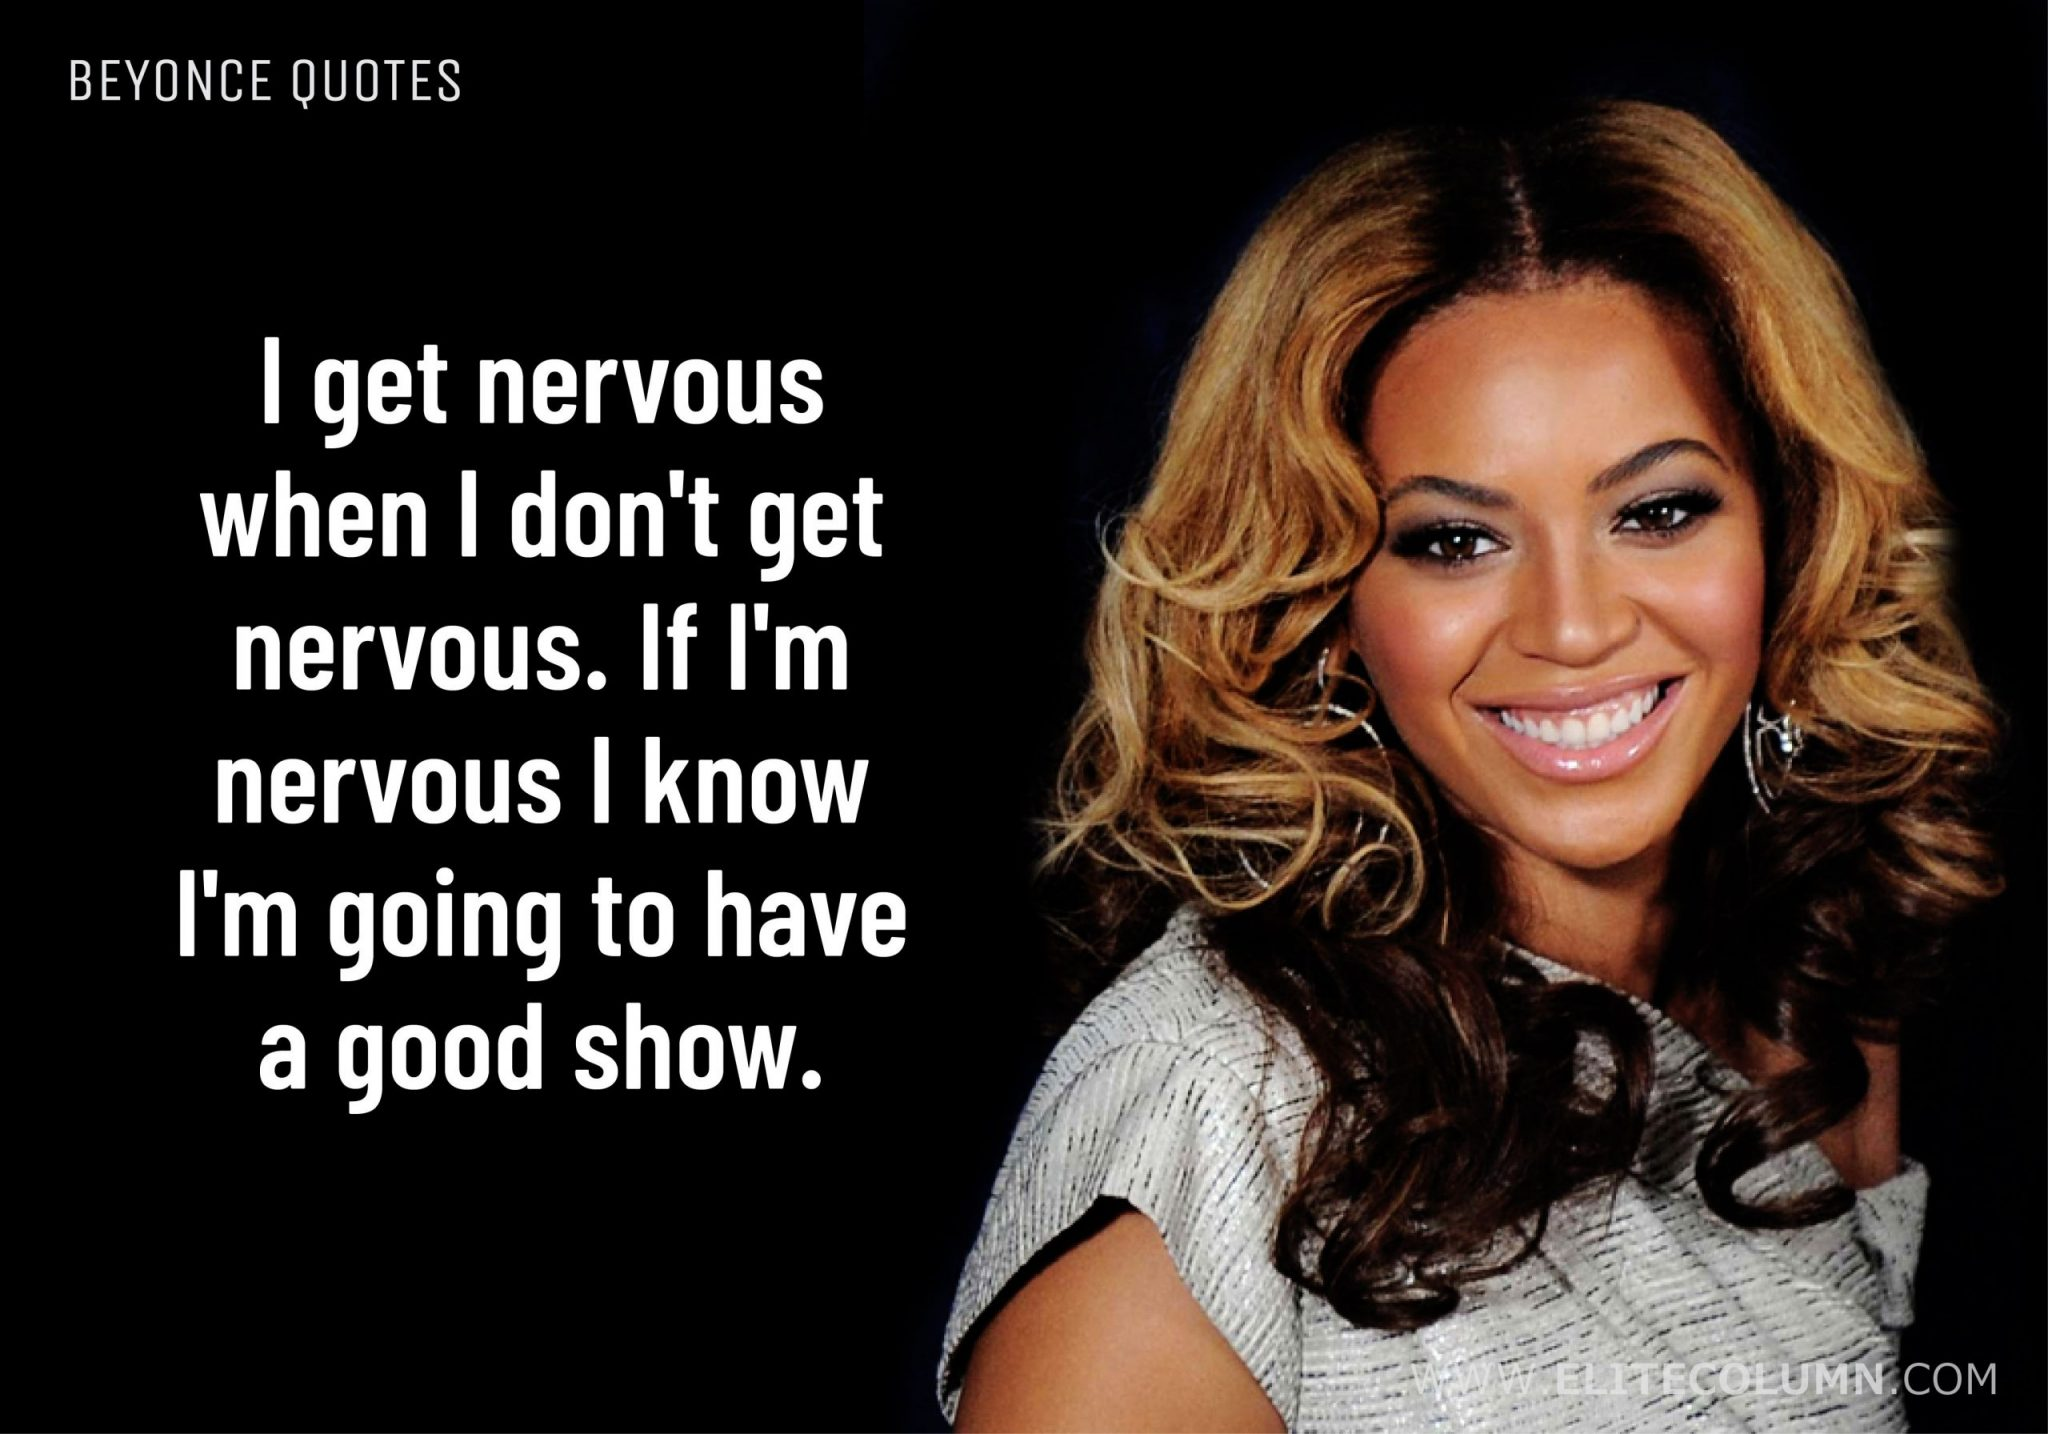 Beyonce Quotes (4)